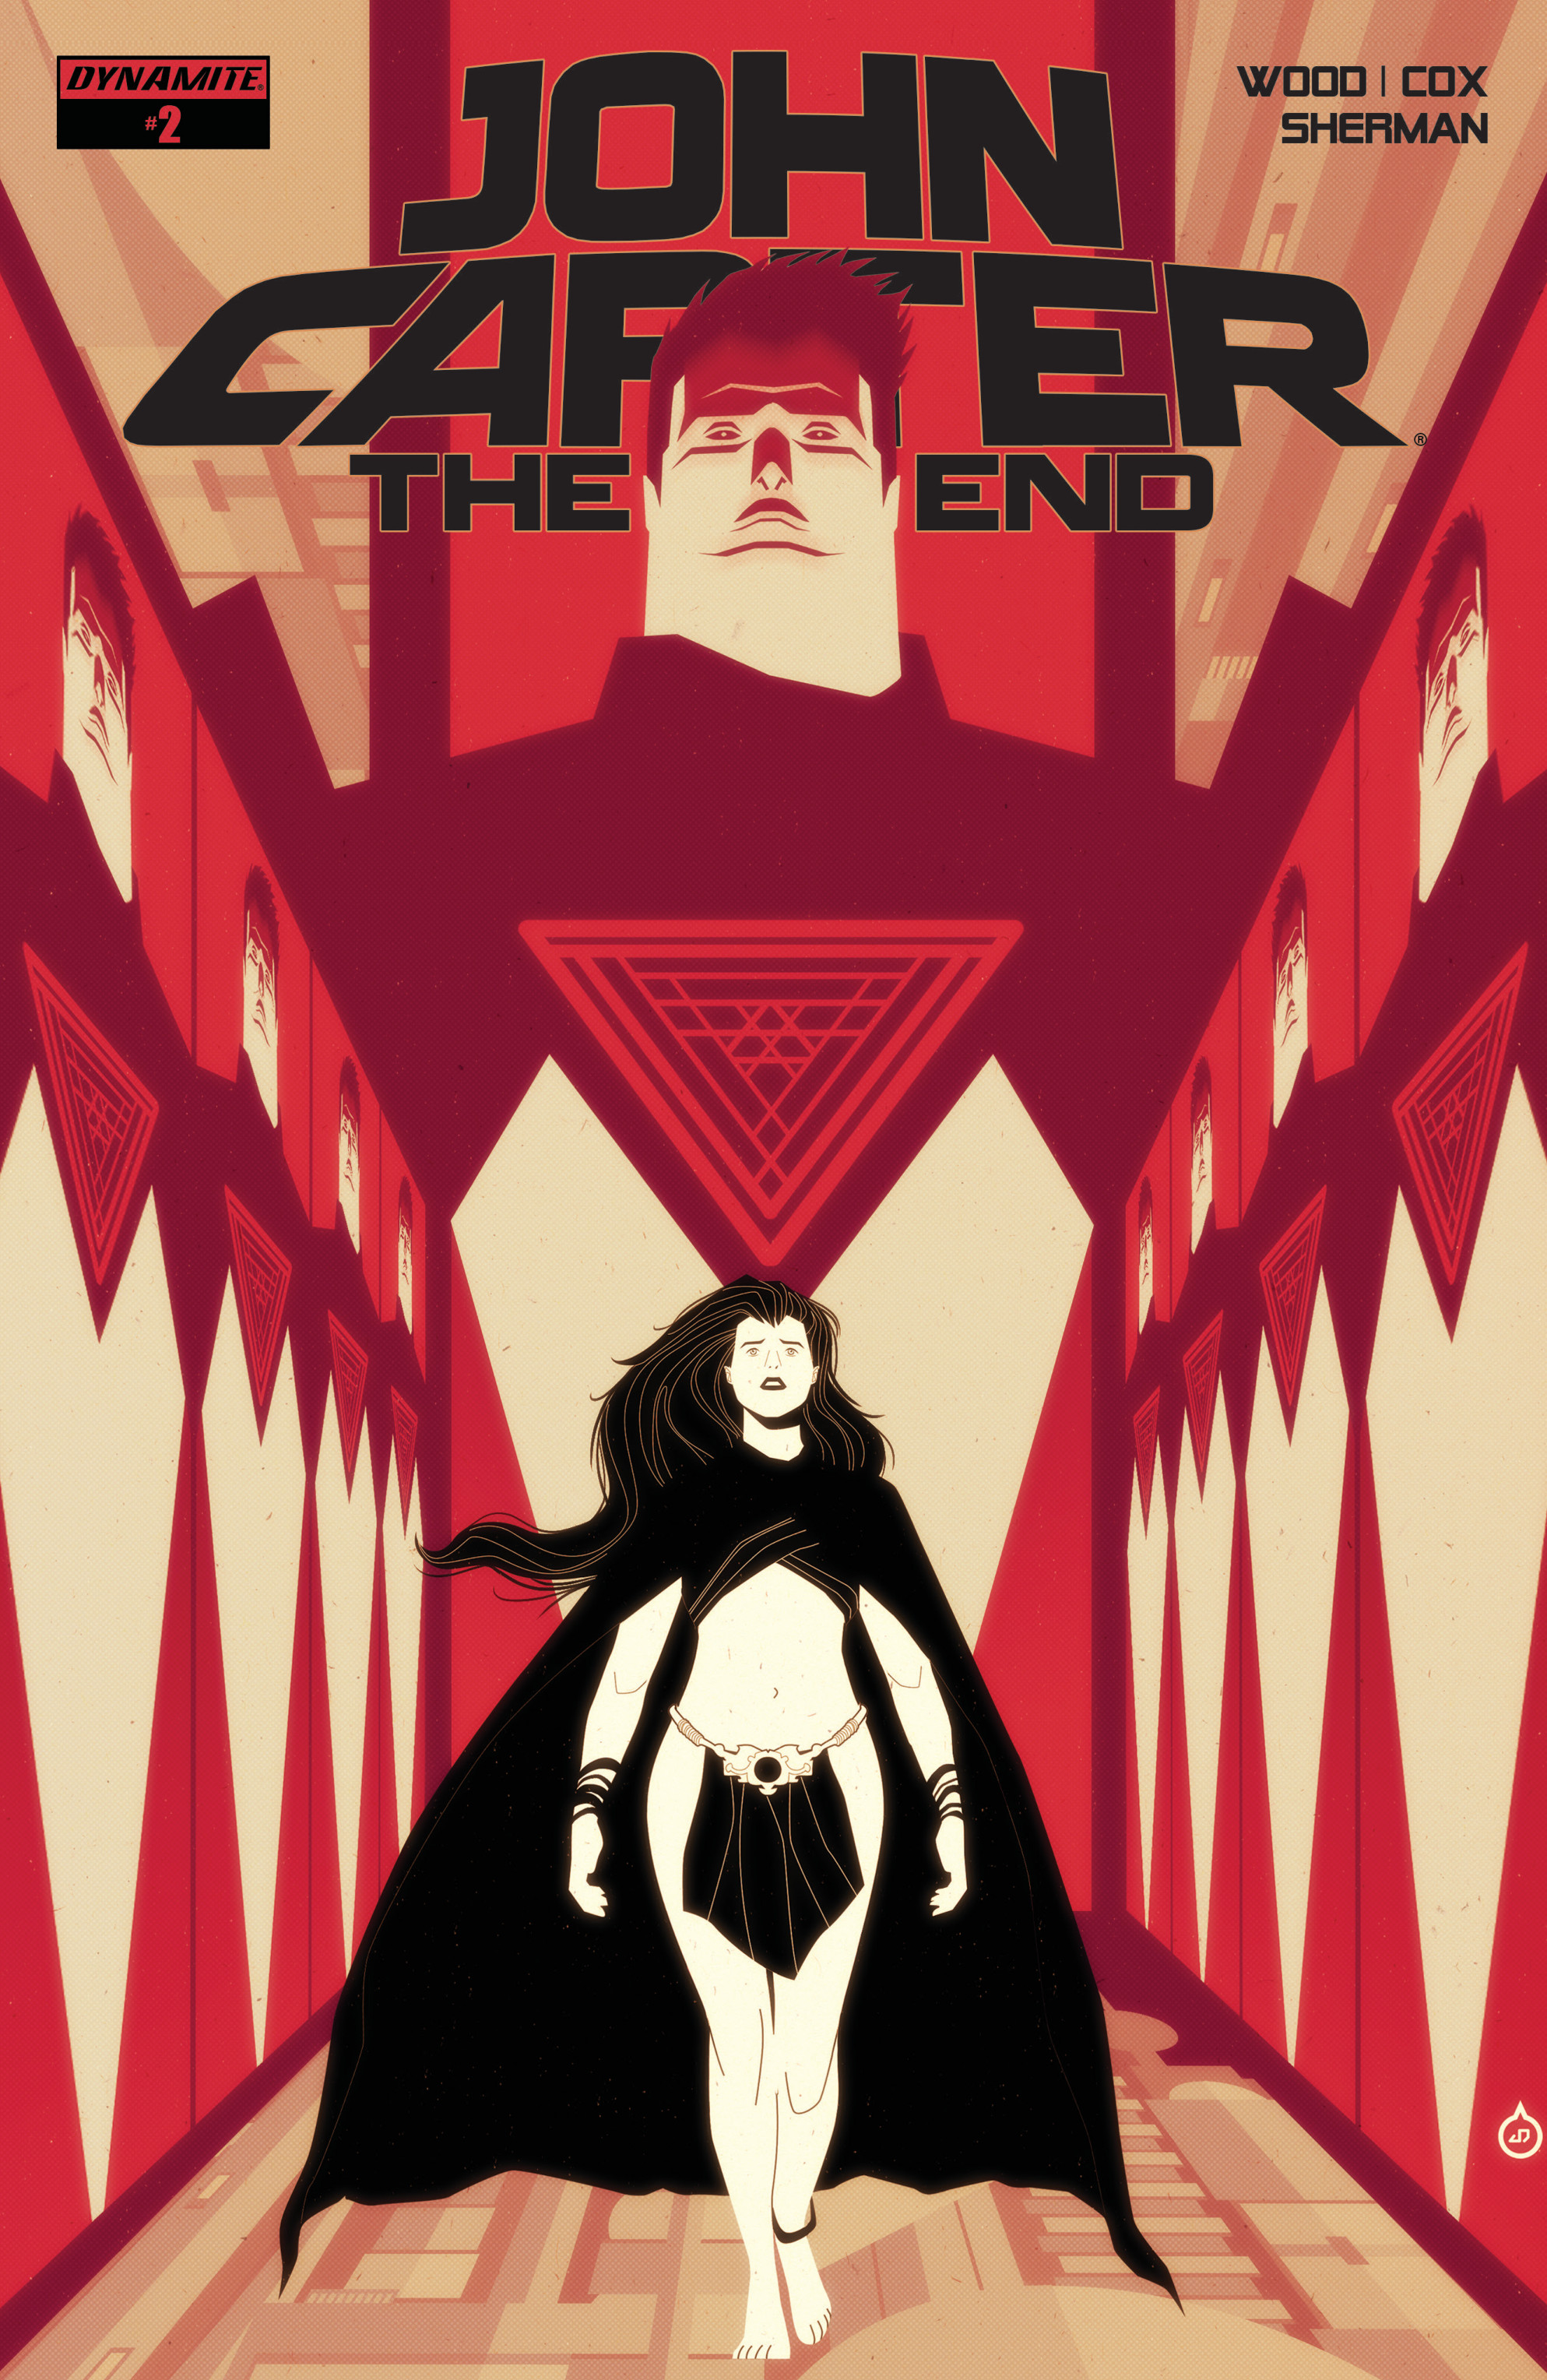 Read online John Carter: The End comic -  Issue #2 - 2